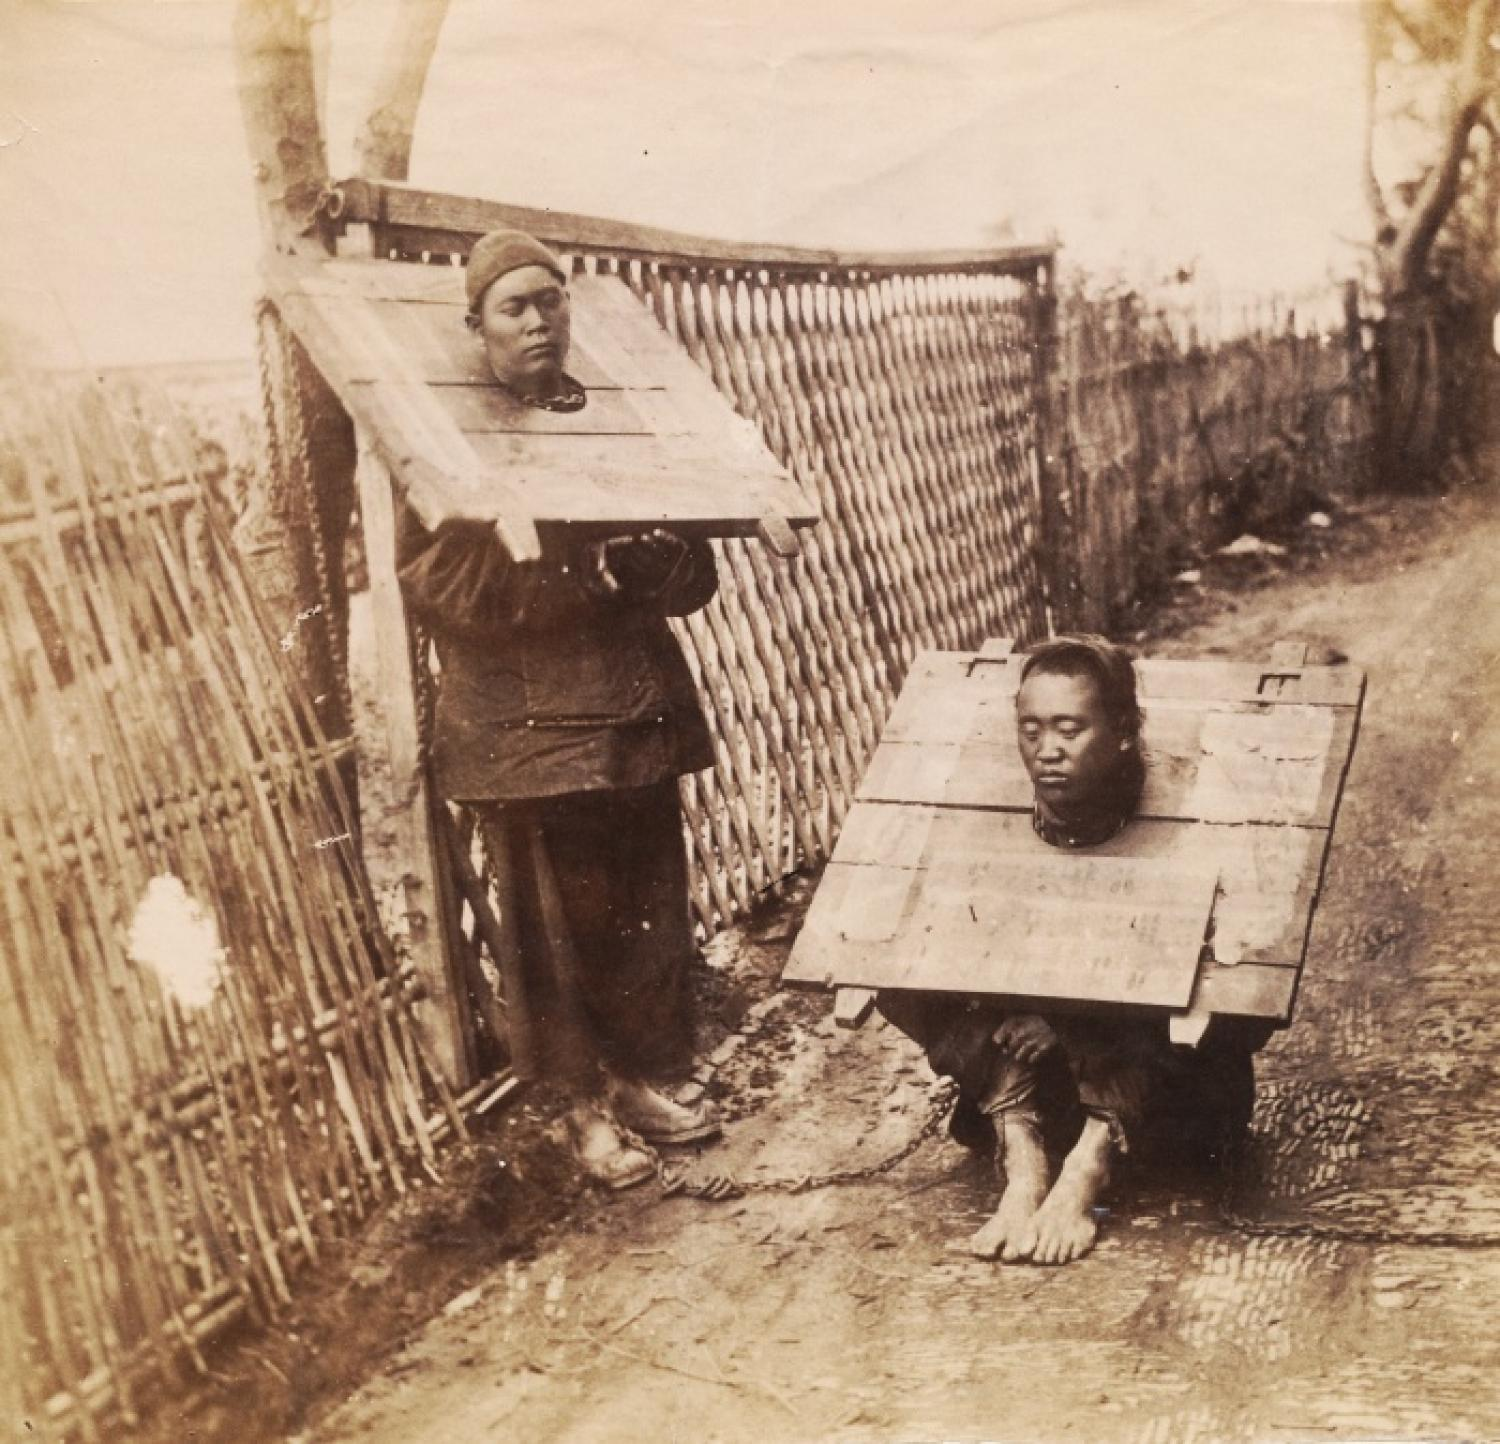 Prisoners in the Cange China By William Saunders.C 1870